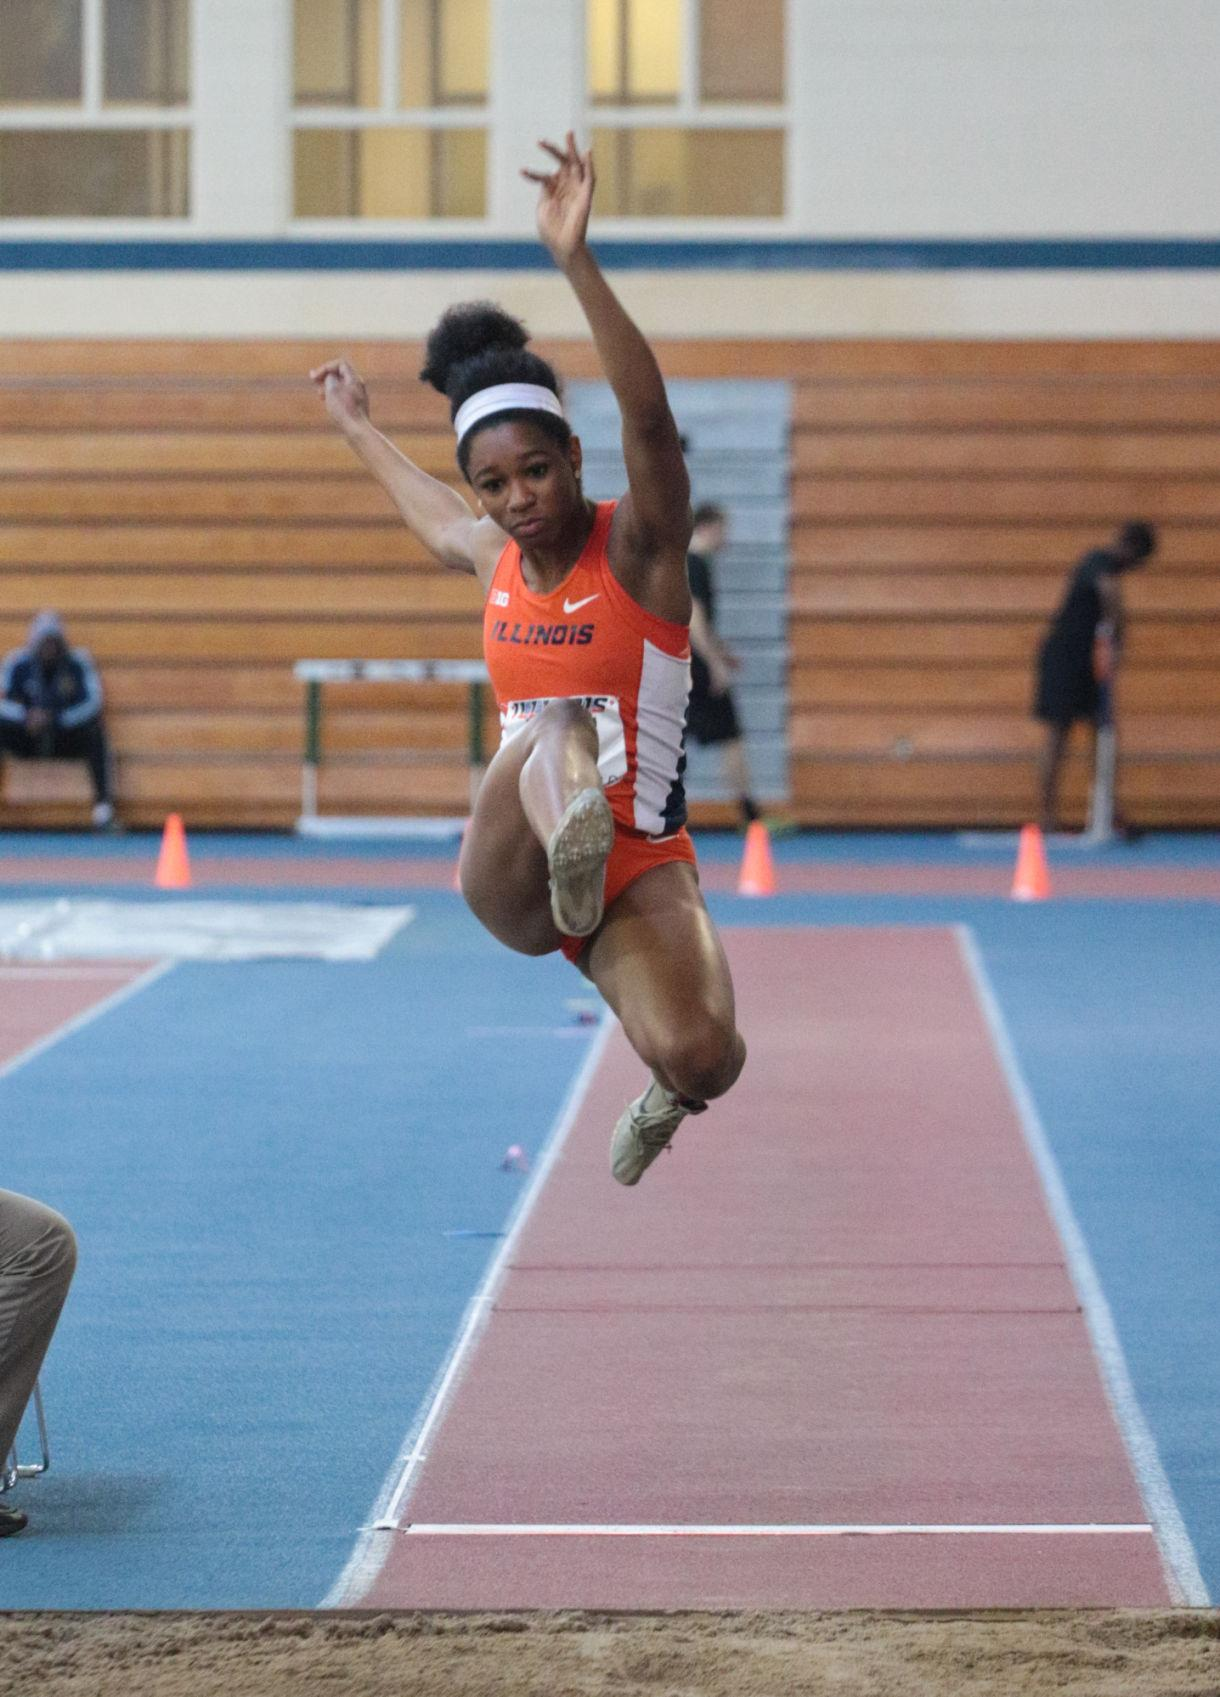 Illinois' Janile Rogers attempts to go the distance on the long jump event during the Orange & Blue meet at the Armory on Saturday, Feb. 21, 2015. Illinois' women's team won 1st place out of 5.